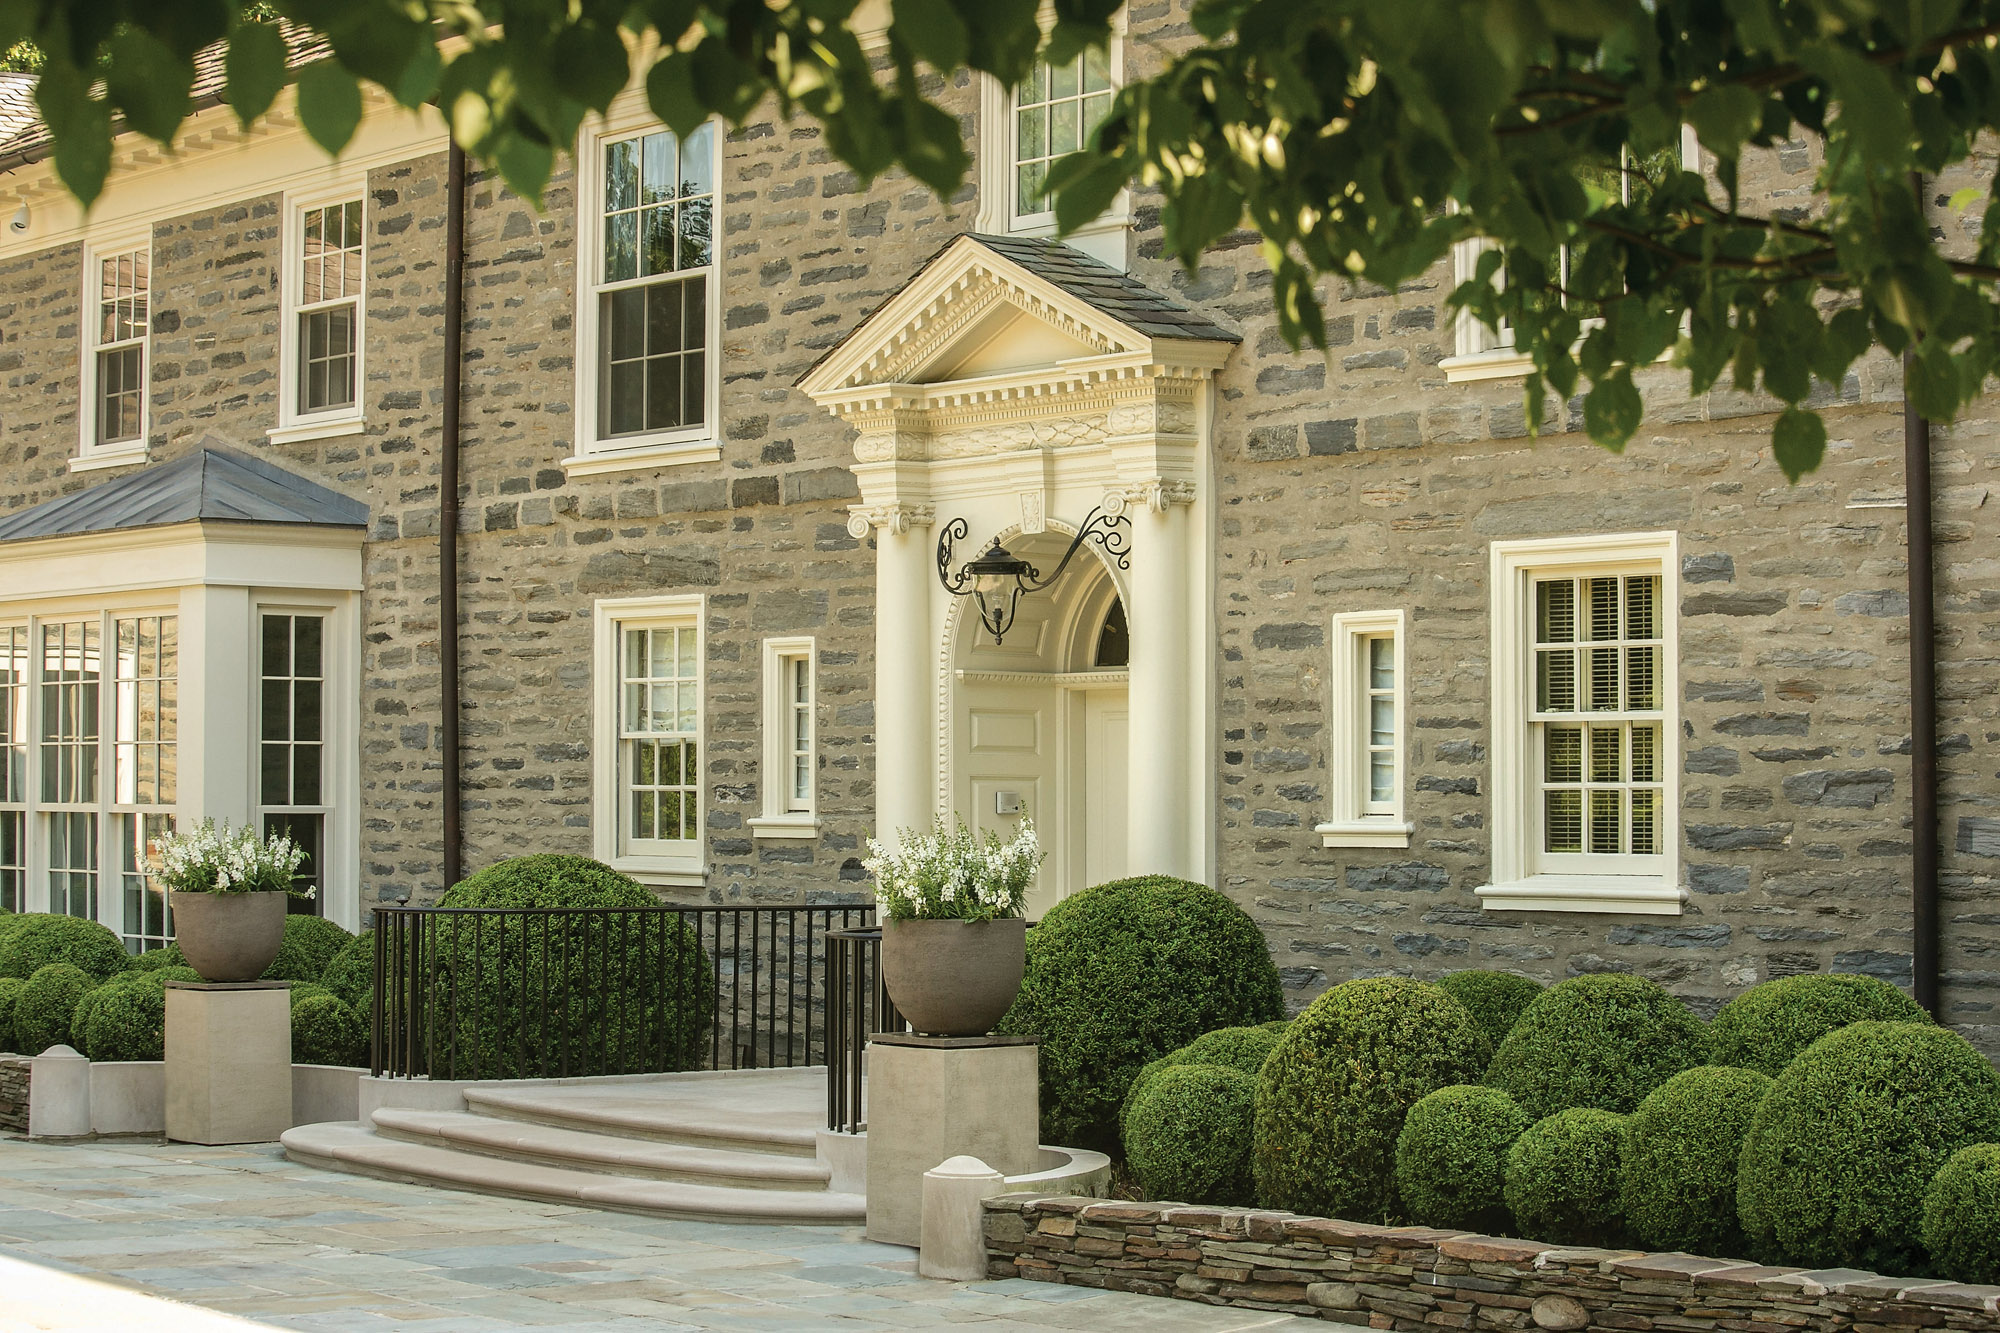 A Traditional Landscape for a Philadelphia Main Line Estate